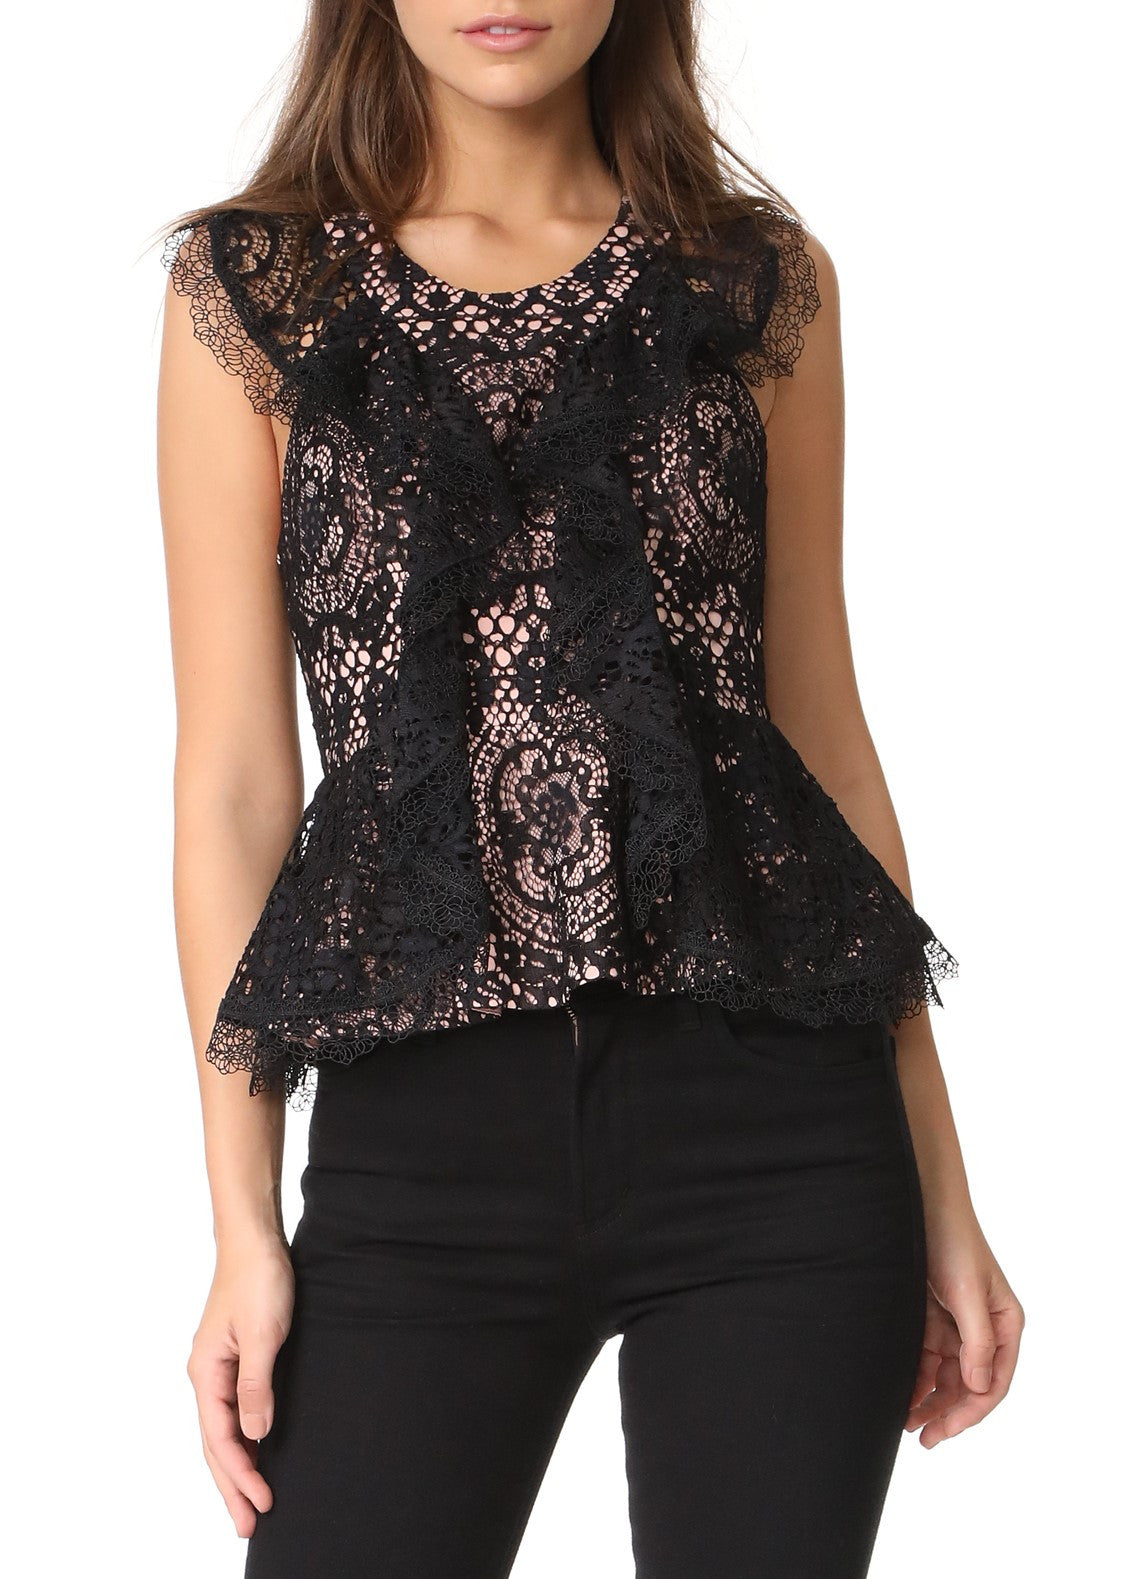 Alexis cairo top black